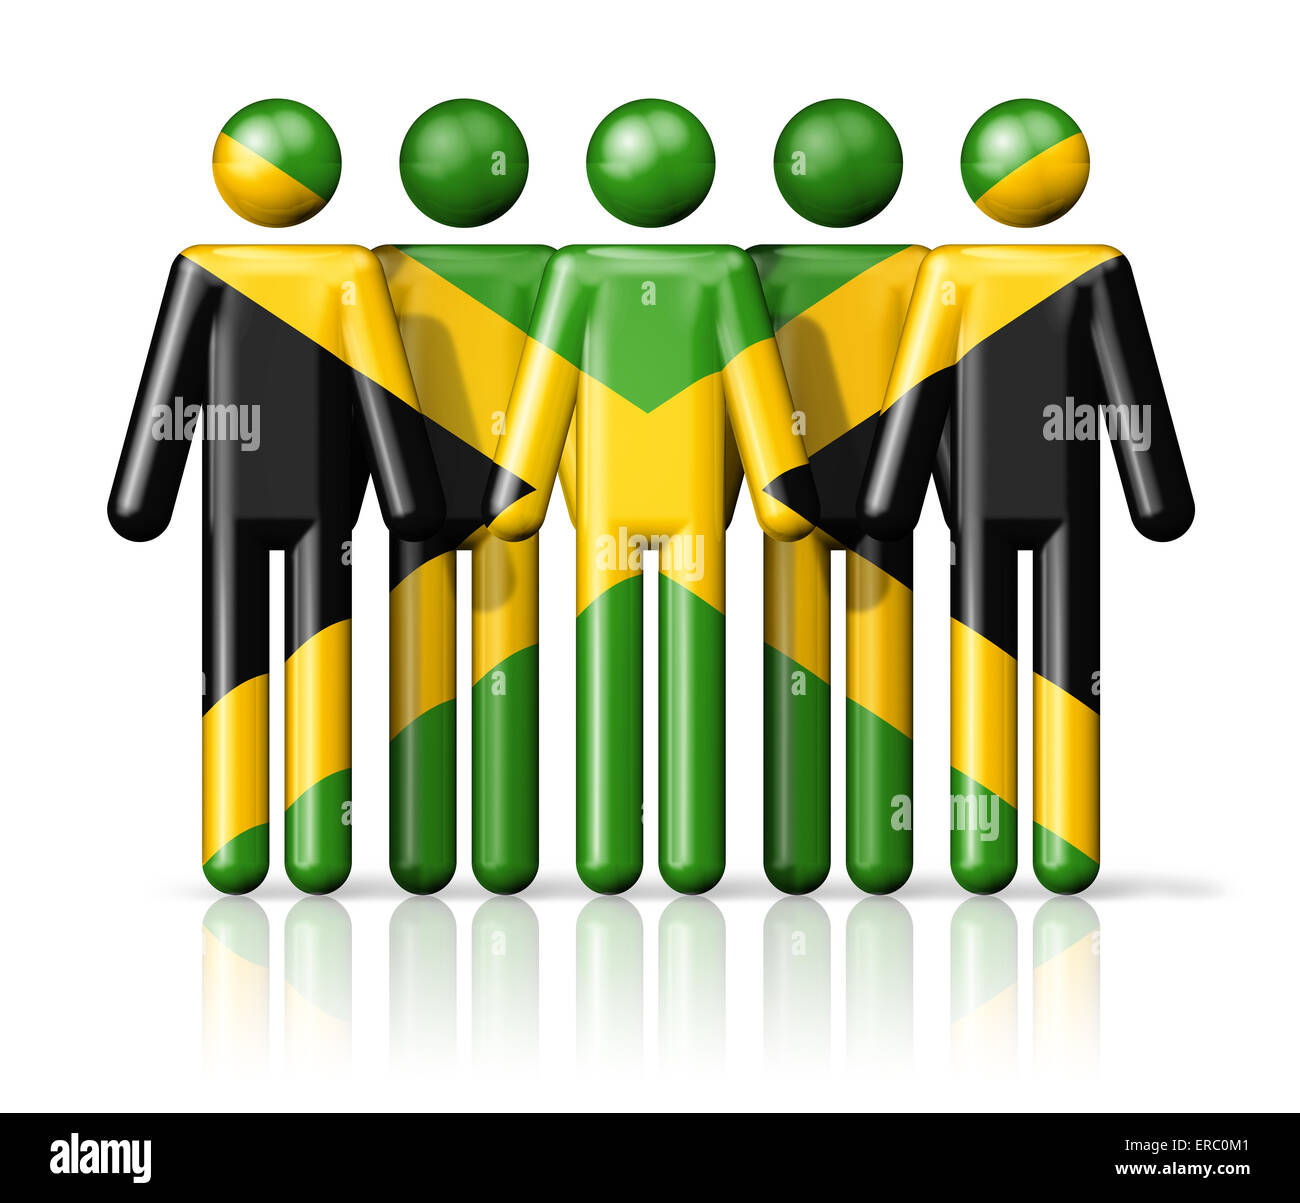 Flag of Jamaica on stick figure - national and social community symbol 3D icon - Stock Image